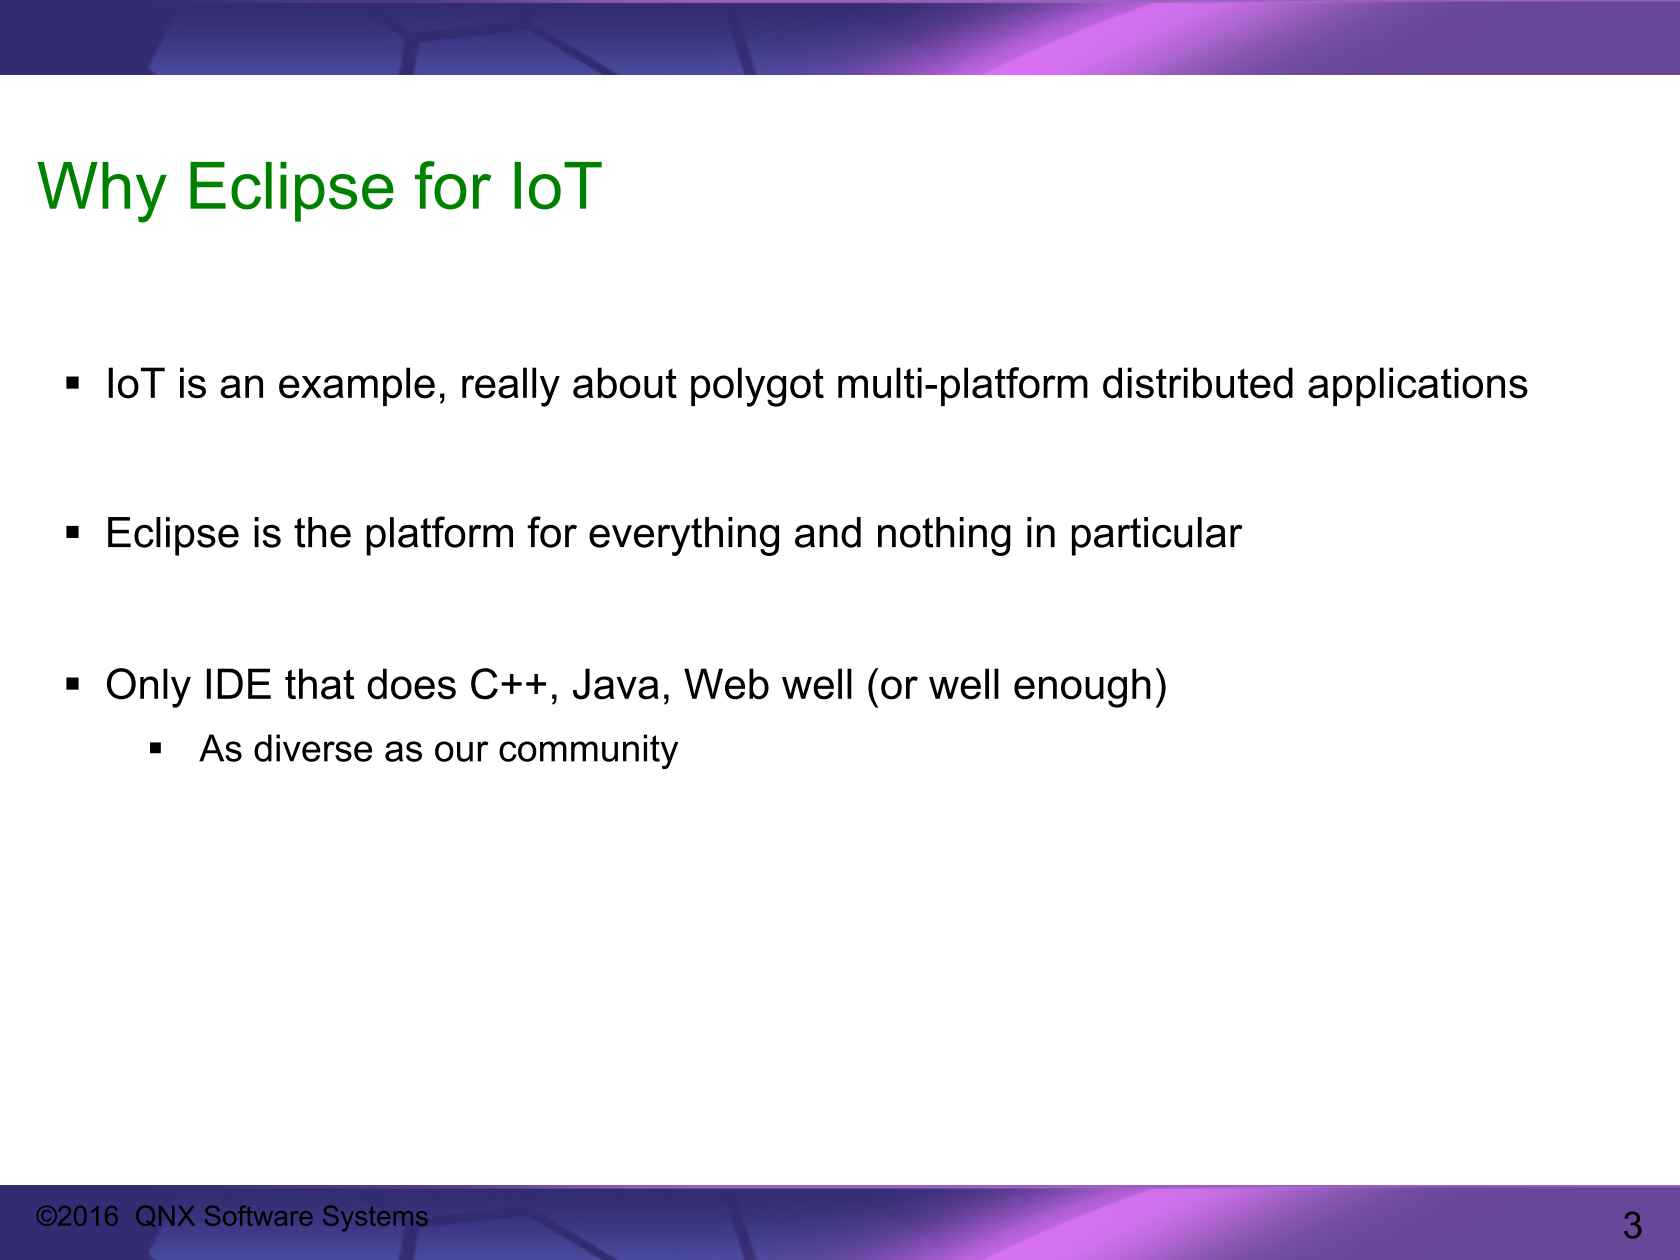 Eclipse, the IDE for IoT